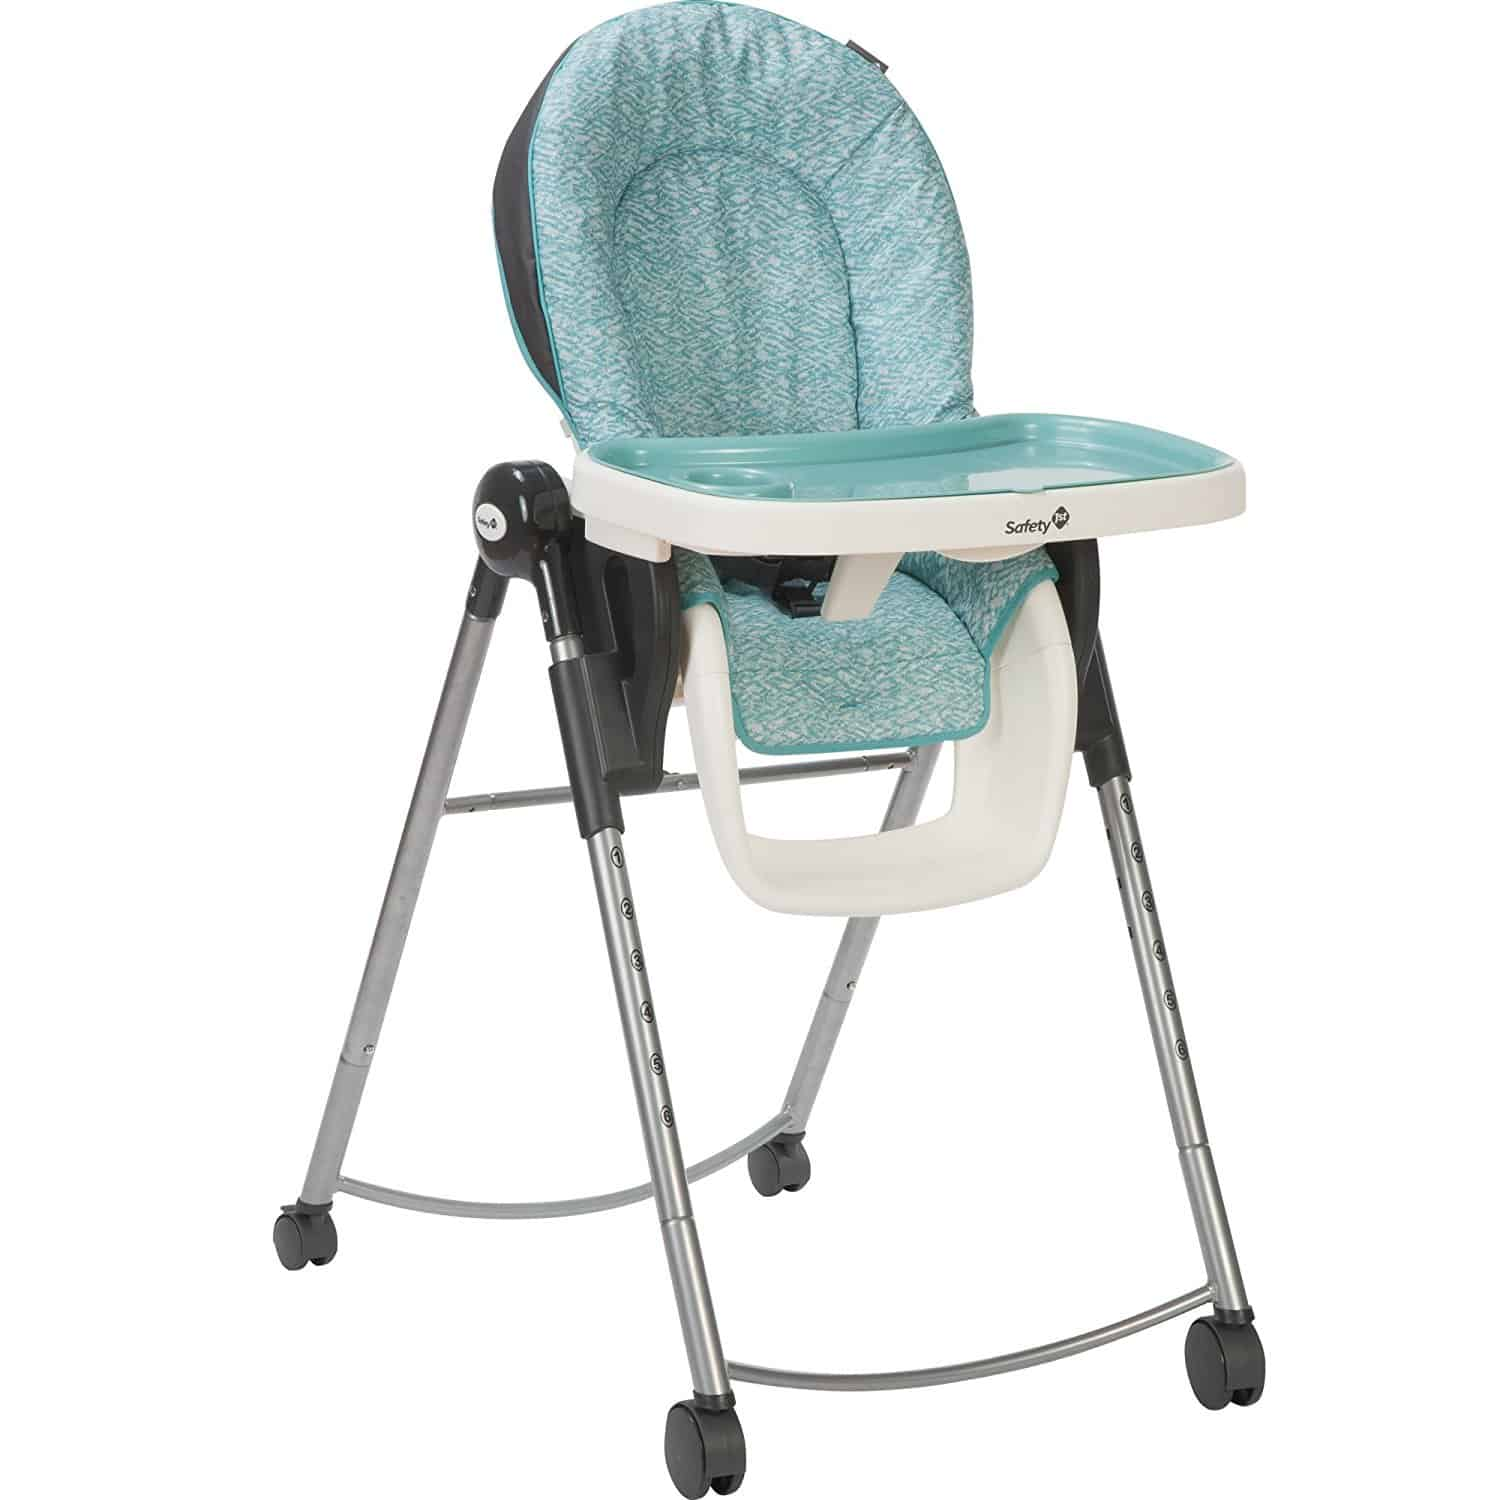 High Chair brand review Safety 1st High Chairs